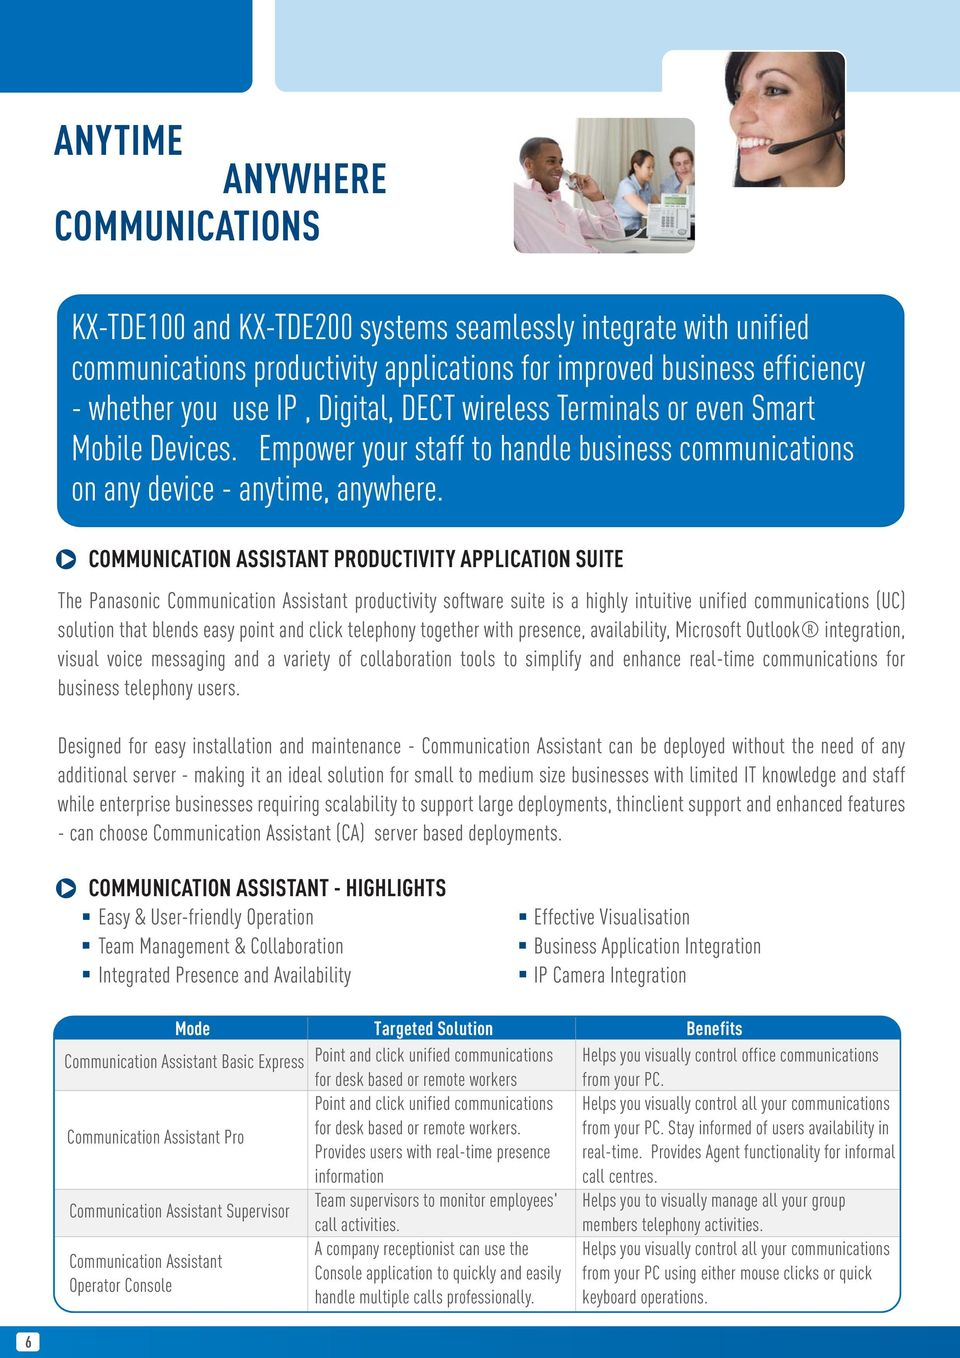 COMMUNICATION ASSISTANT PRODUCTIVITY APPLICATION SUITE The Panasonic Communication Assistant productivity software suite is a highly intuitive unified communications (UC) solution that blends easy